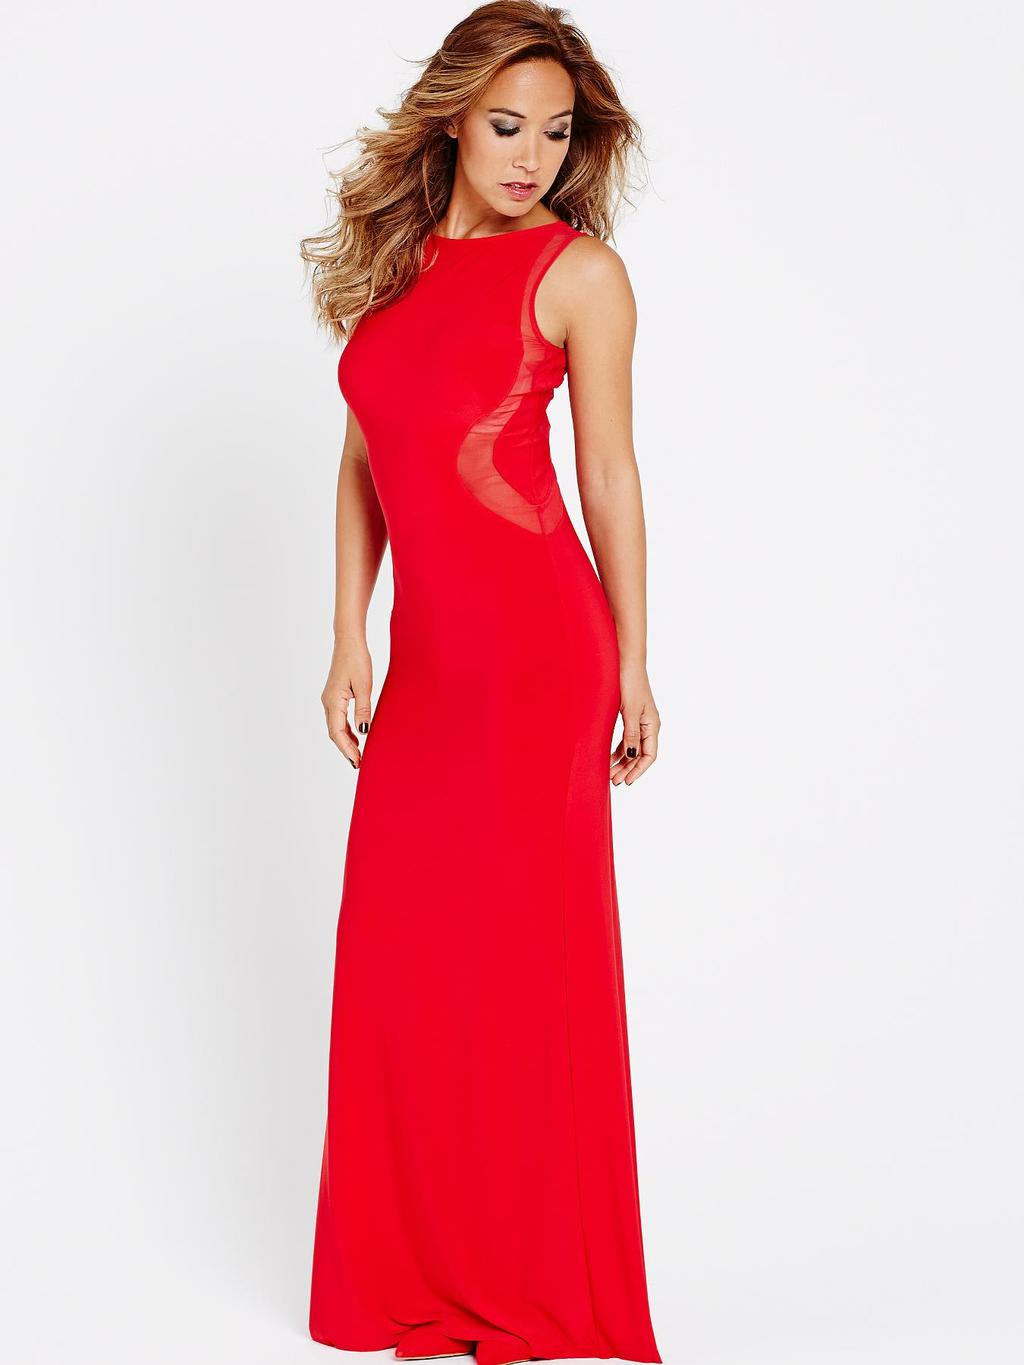 Illusion Maxi Dress, Red - neckline: round neck; pattern: plain; sleeve style: sleeveless; style: maxi dress; predominant colour: true red; occasions: evening, occasion; length: floor length; fit: body skimming; sleeve length: sleeveless; pattern type: fabric; texture group: jersey - stretchy/drapey; trends: zesty shades; season: a/w 2014